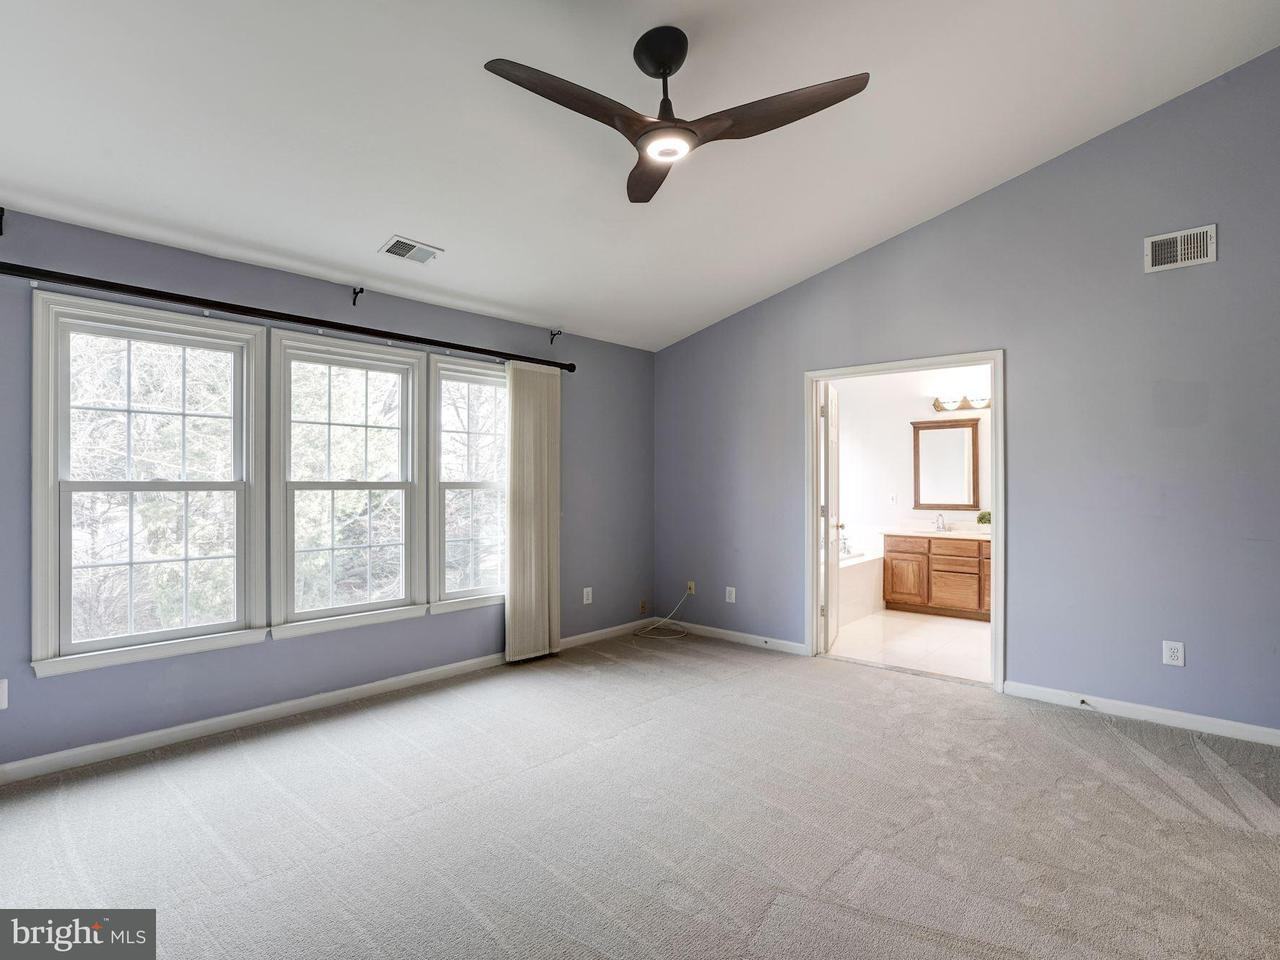 Additional photo for property listing at 10481 Courtney Drive 10481 Courtney Drive Fairfax, Virginia 22030 United States